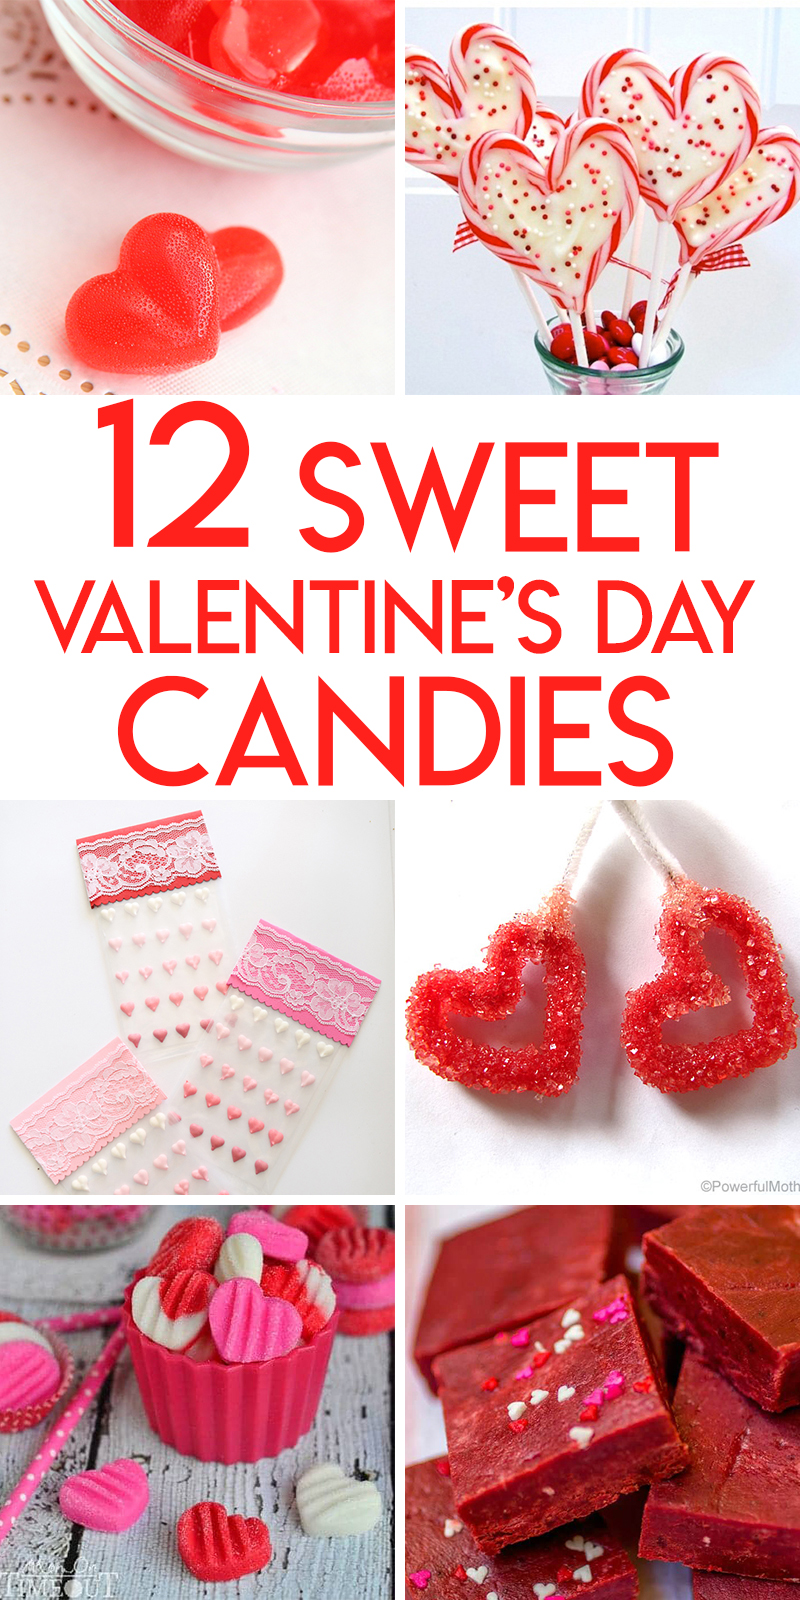 12 valentine's day candies recipes